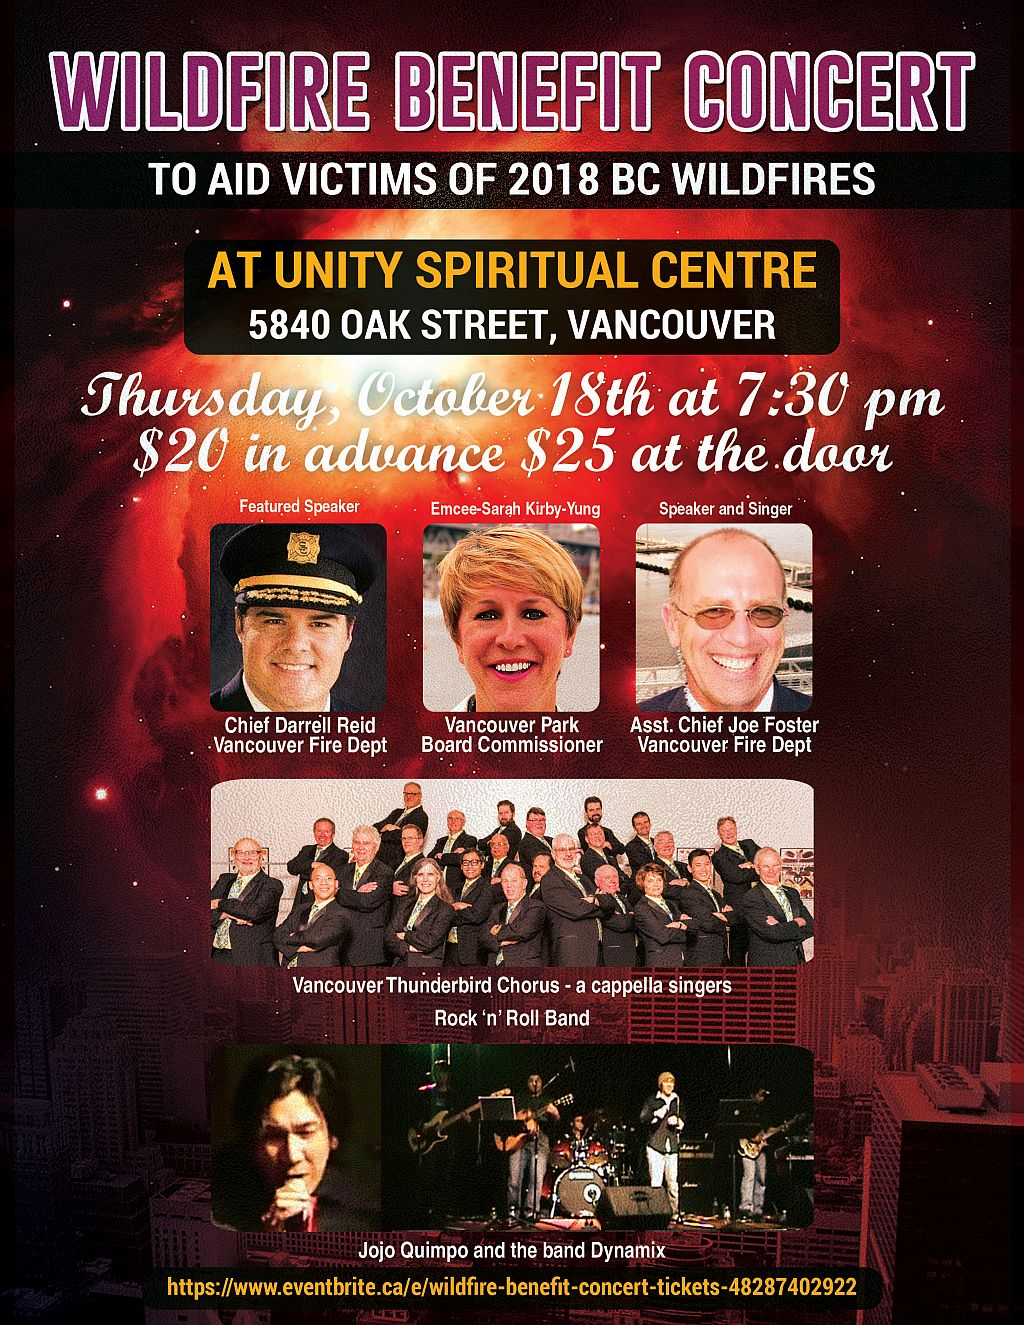 Wildfire Benefit Concert at Unity Spiritual Centre